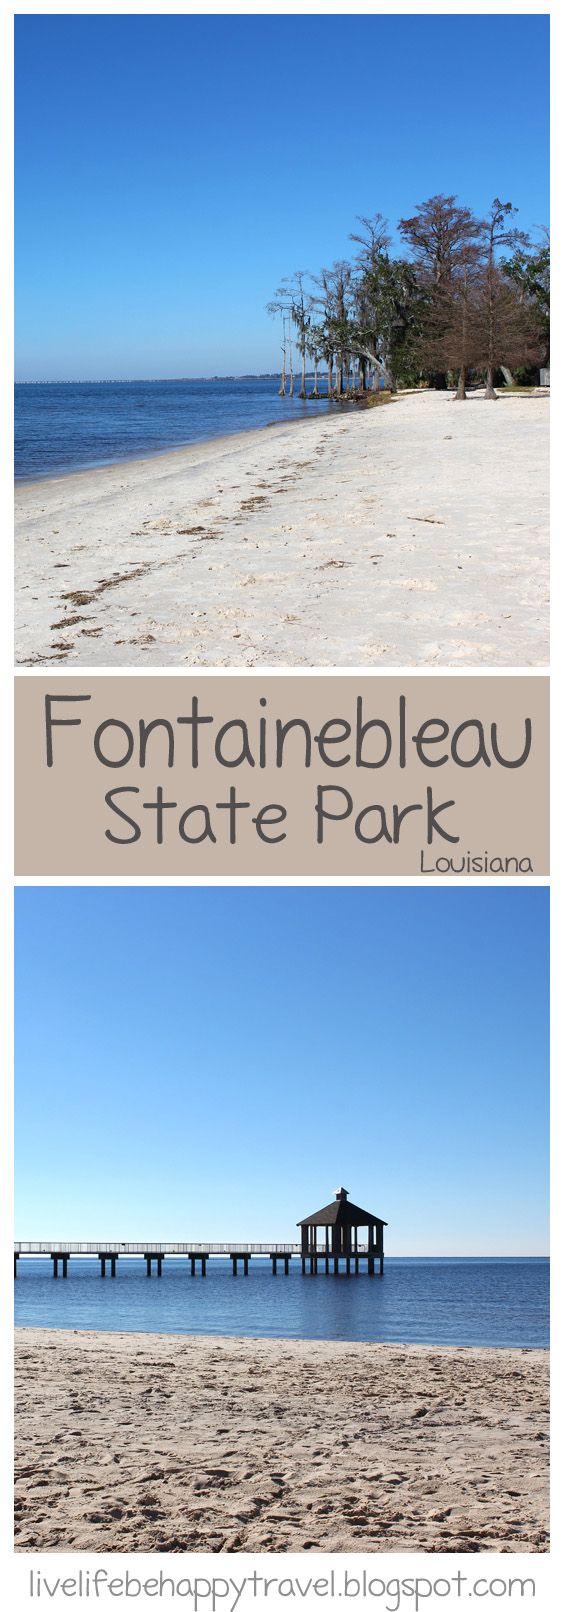 Fun things to do at Fontainebleau State Park - Lake Pontchartrain - Louisiana